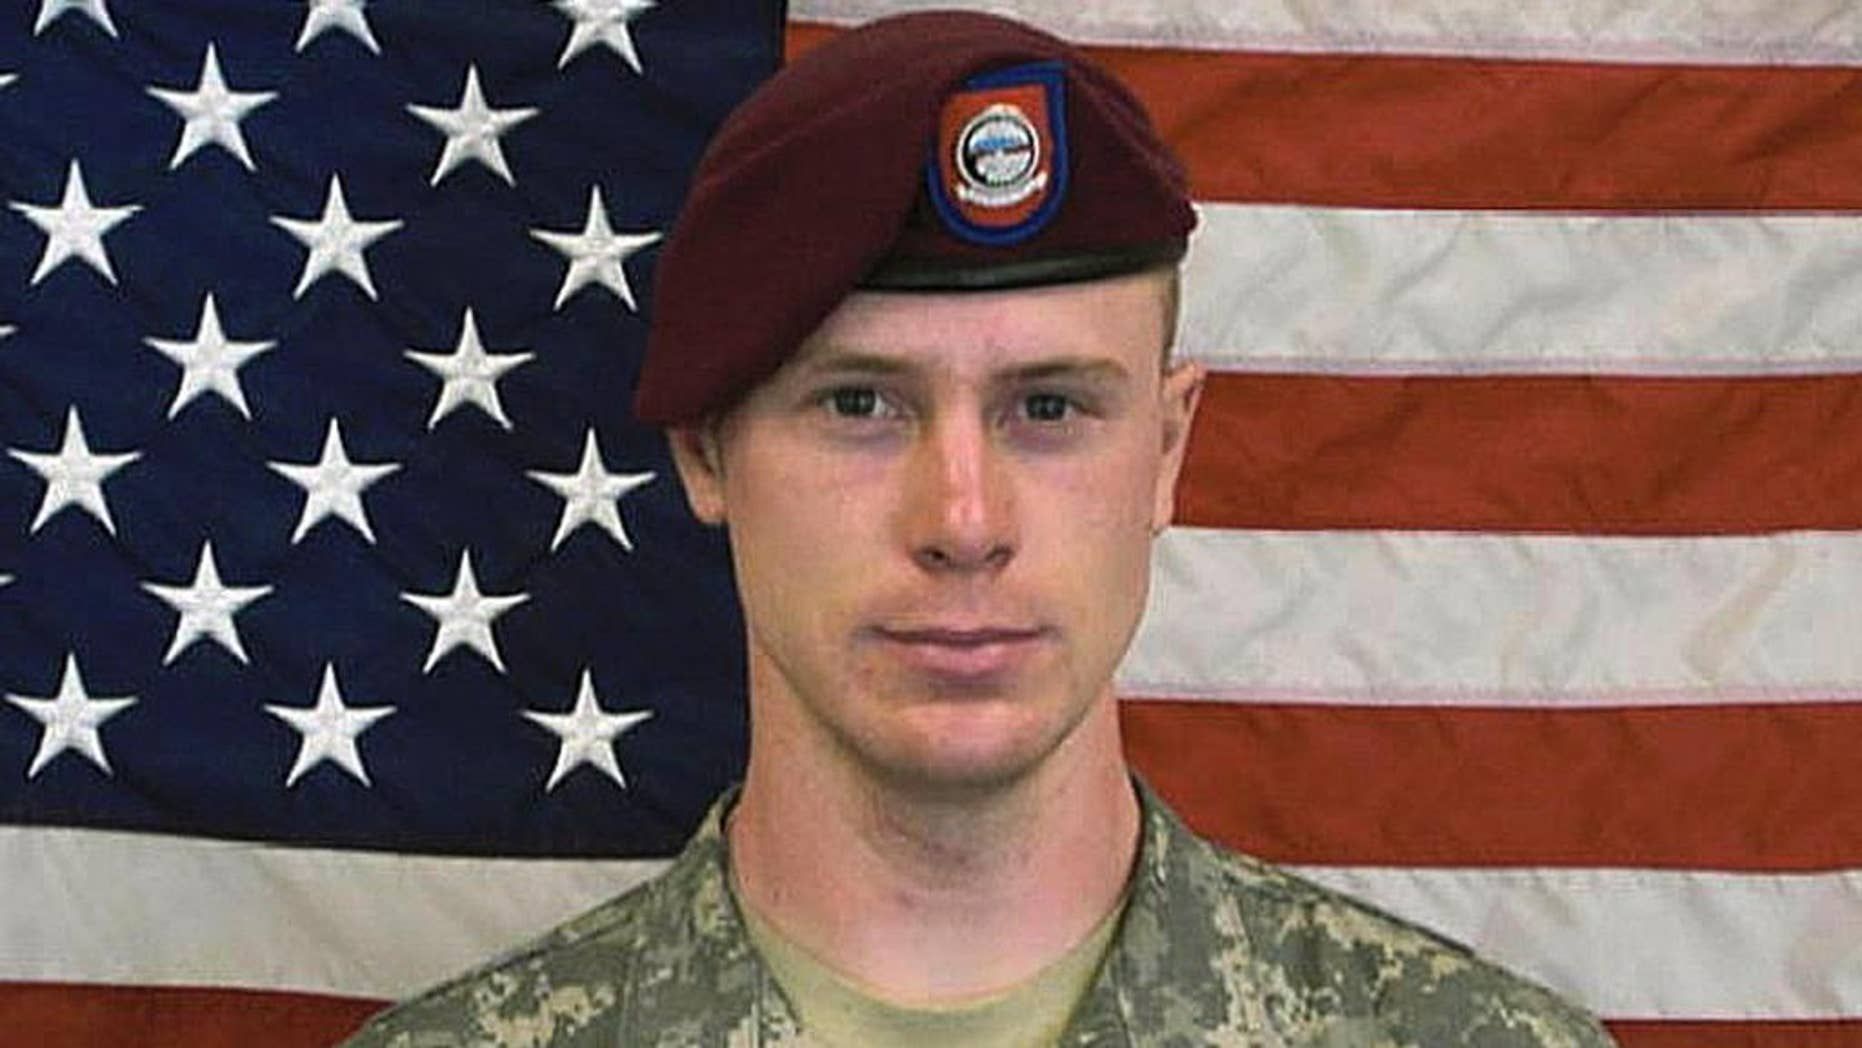 FILE - This undated file image provided by the U.S. Army shows Sgt. Bowe Bergdahl. The Pentagon's inspector general on Dec. 9, 2015, has told a House panel investigating the five Taliban Guantanamo Bay detainees released in exchange for Bergdahl that it found no evidence that a ransom was ever attempted or paid to secure the soldier's release. (U.S. Army via AP, file)